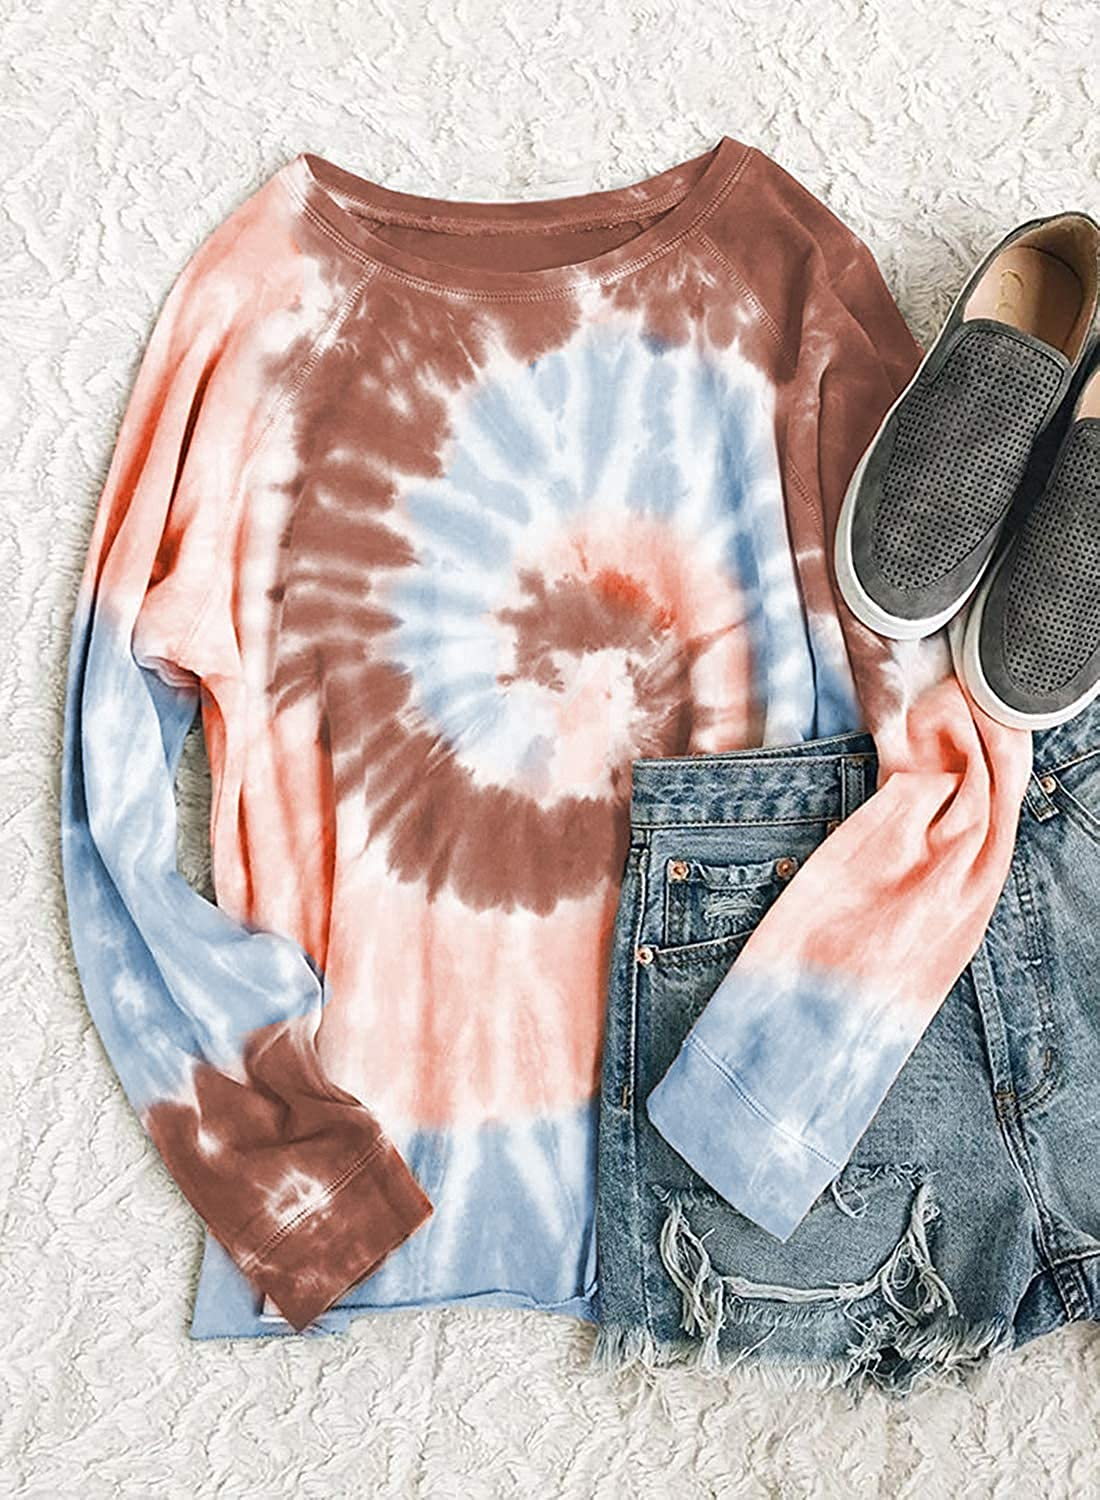 Womens Tie Dye Printed Sweatshirts Long Sleeve Crew Neck Color Block Oversized Shirts Blouse Pullover Tops Loungewear